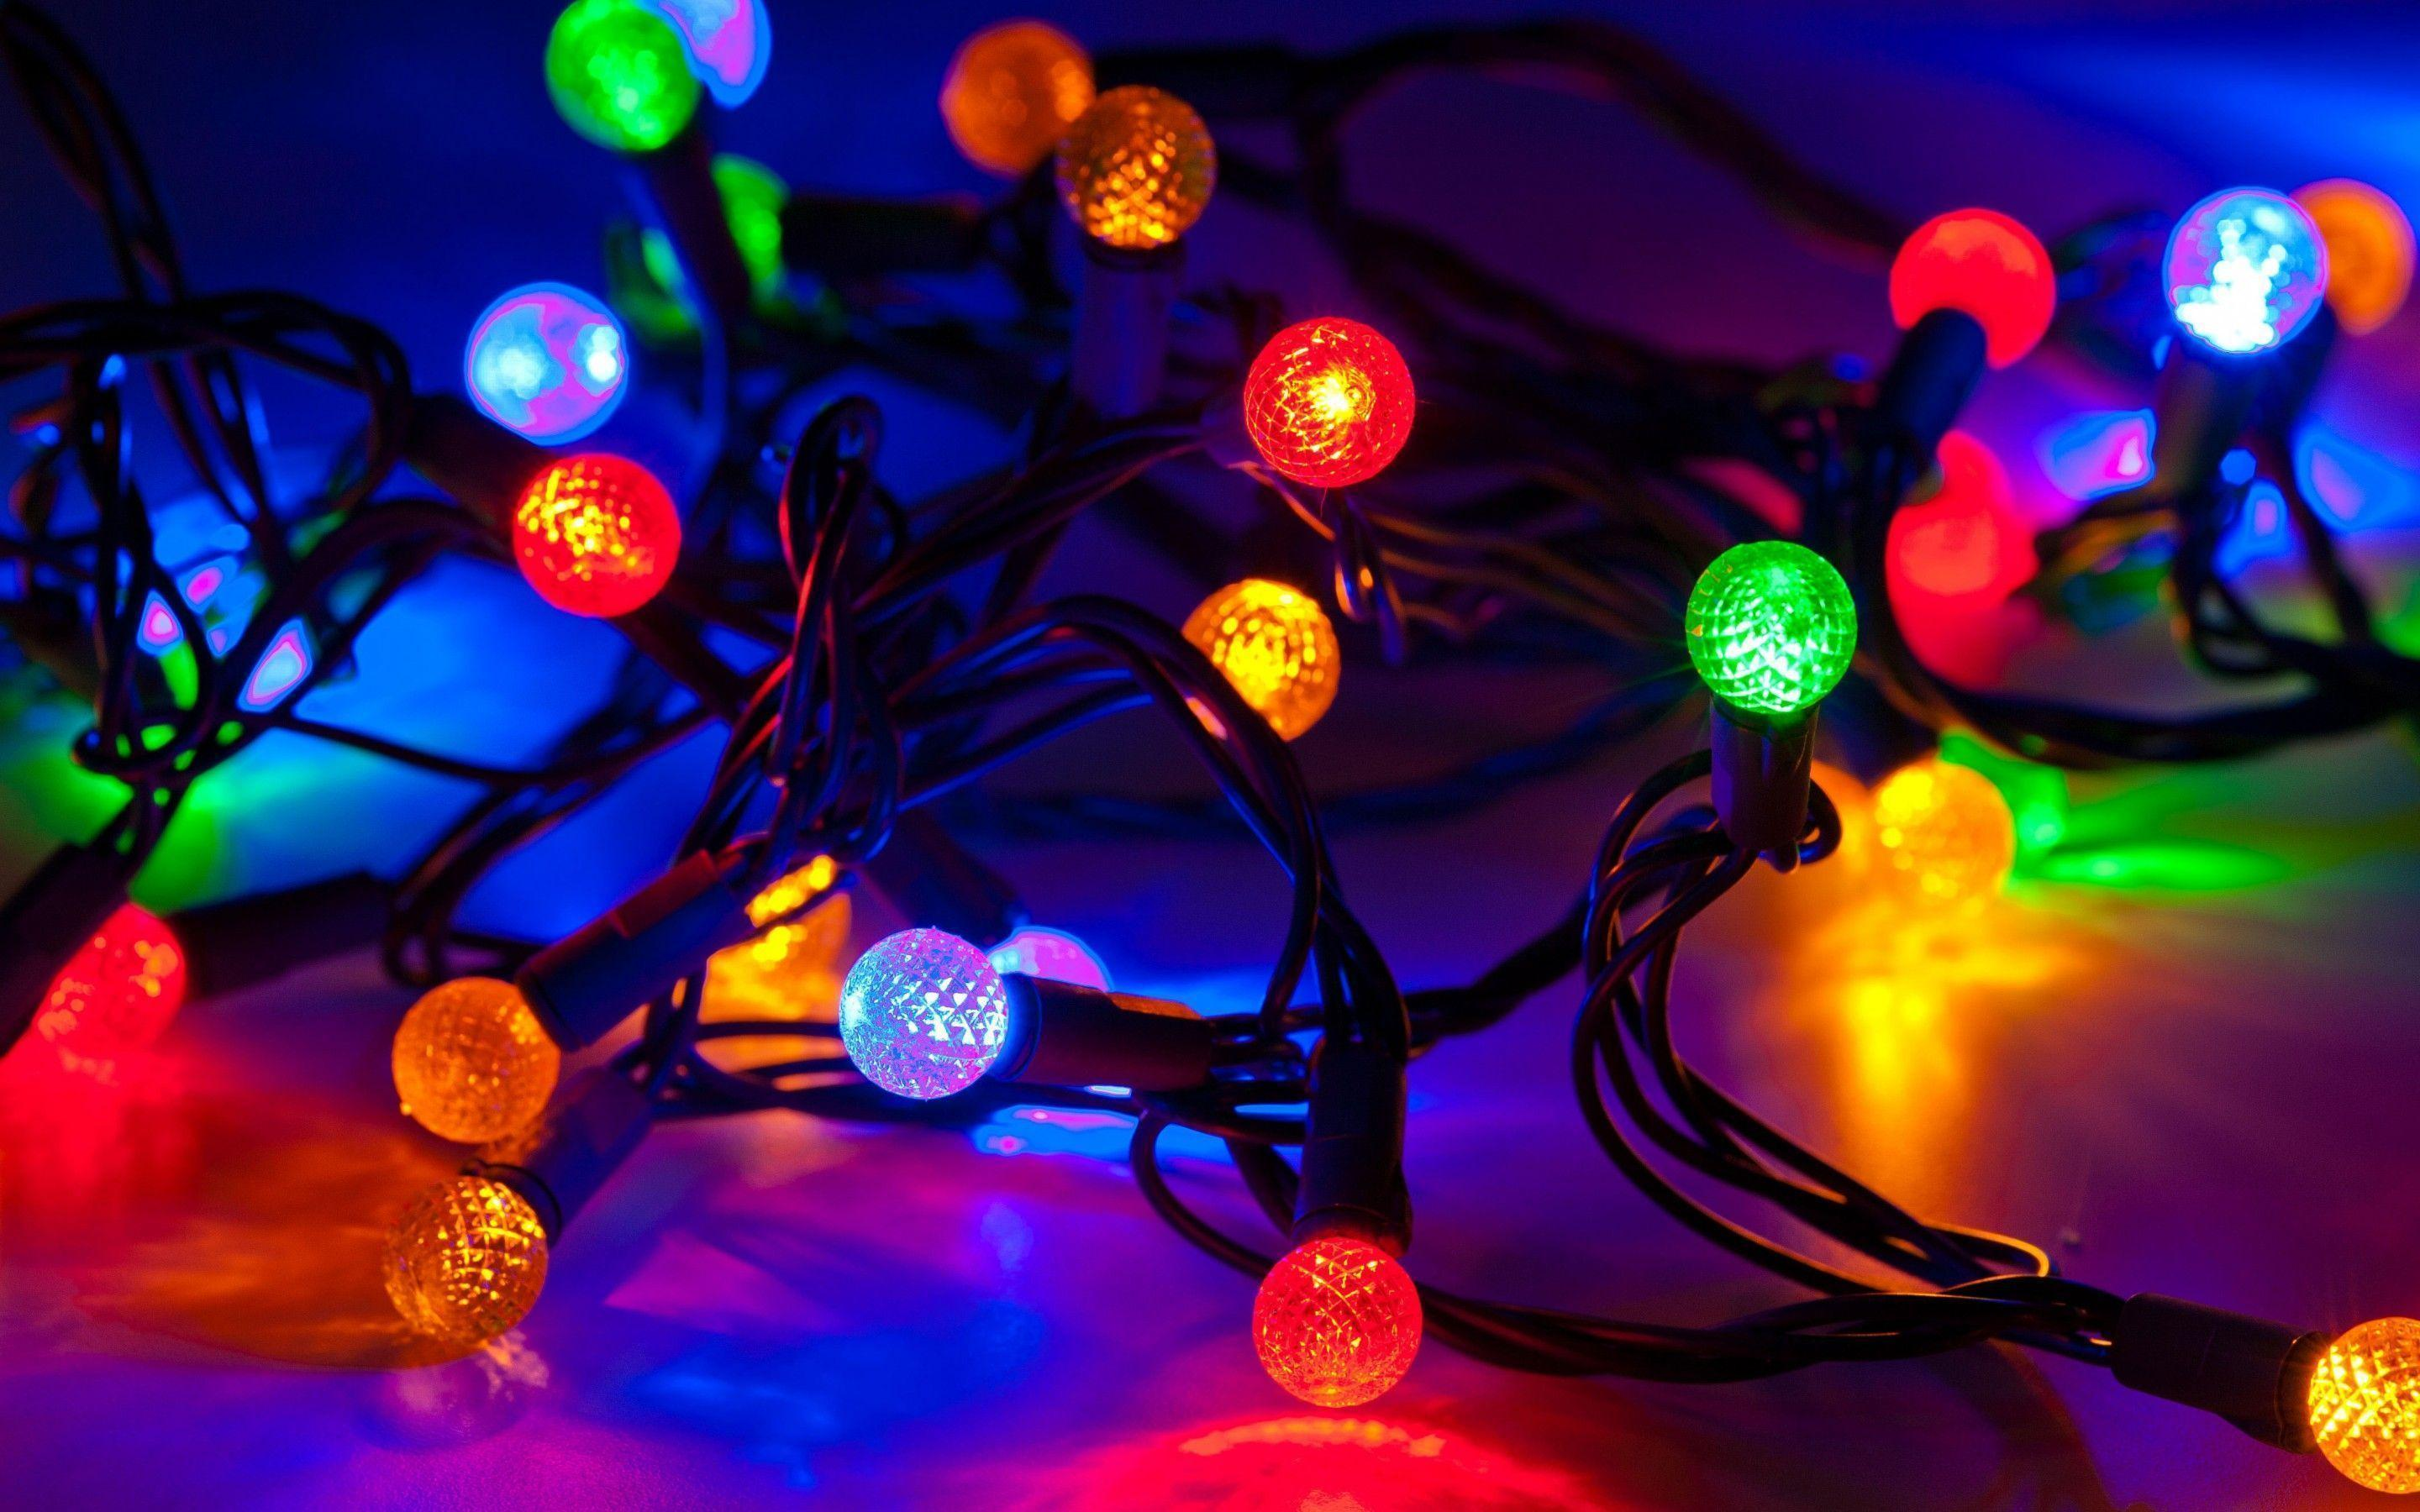 Christmas Lights Wallpapers - Full HD wallpaper search - page 3